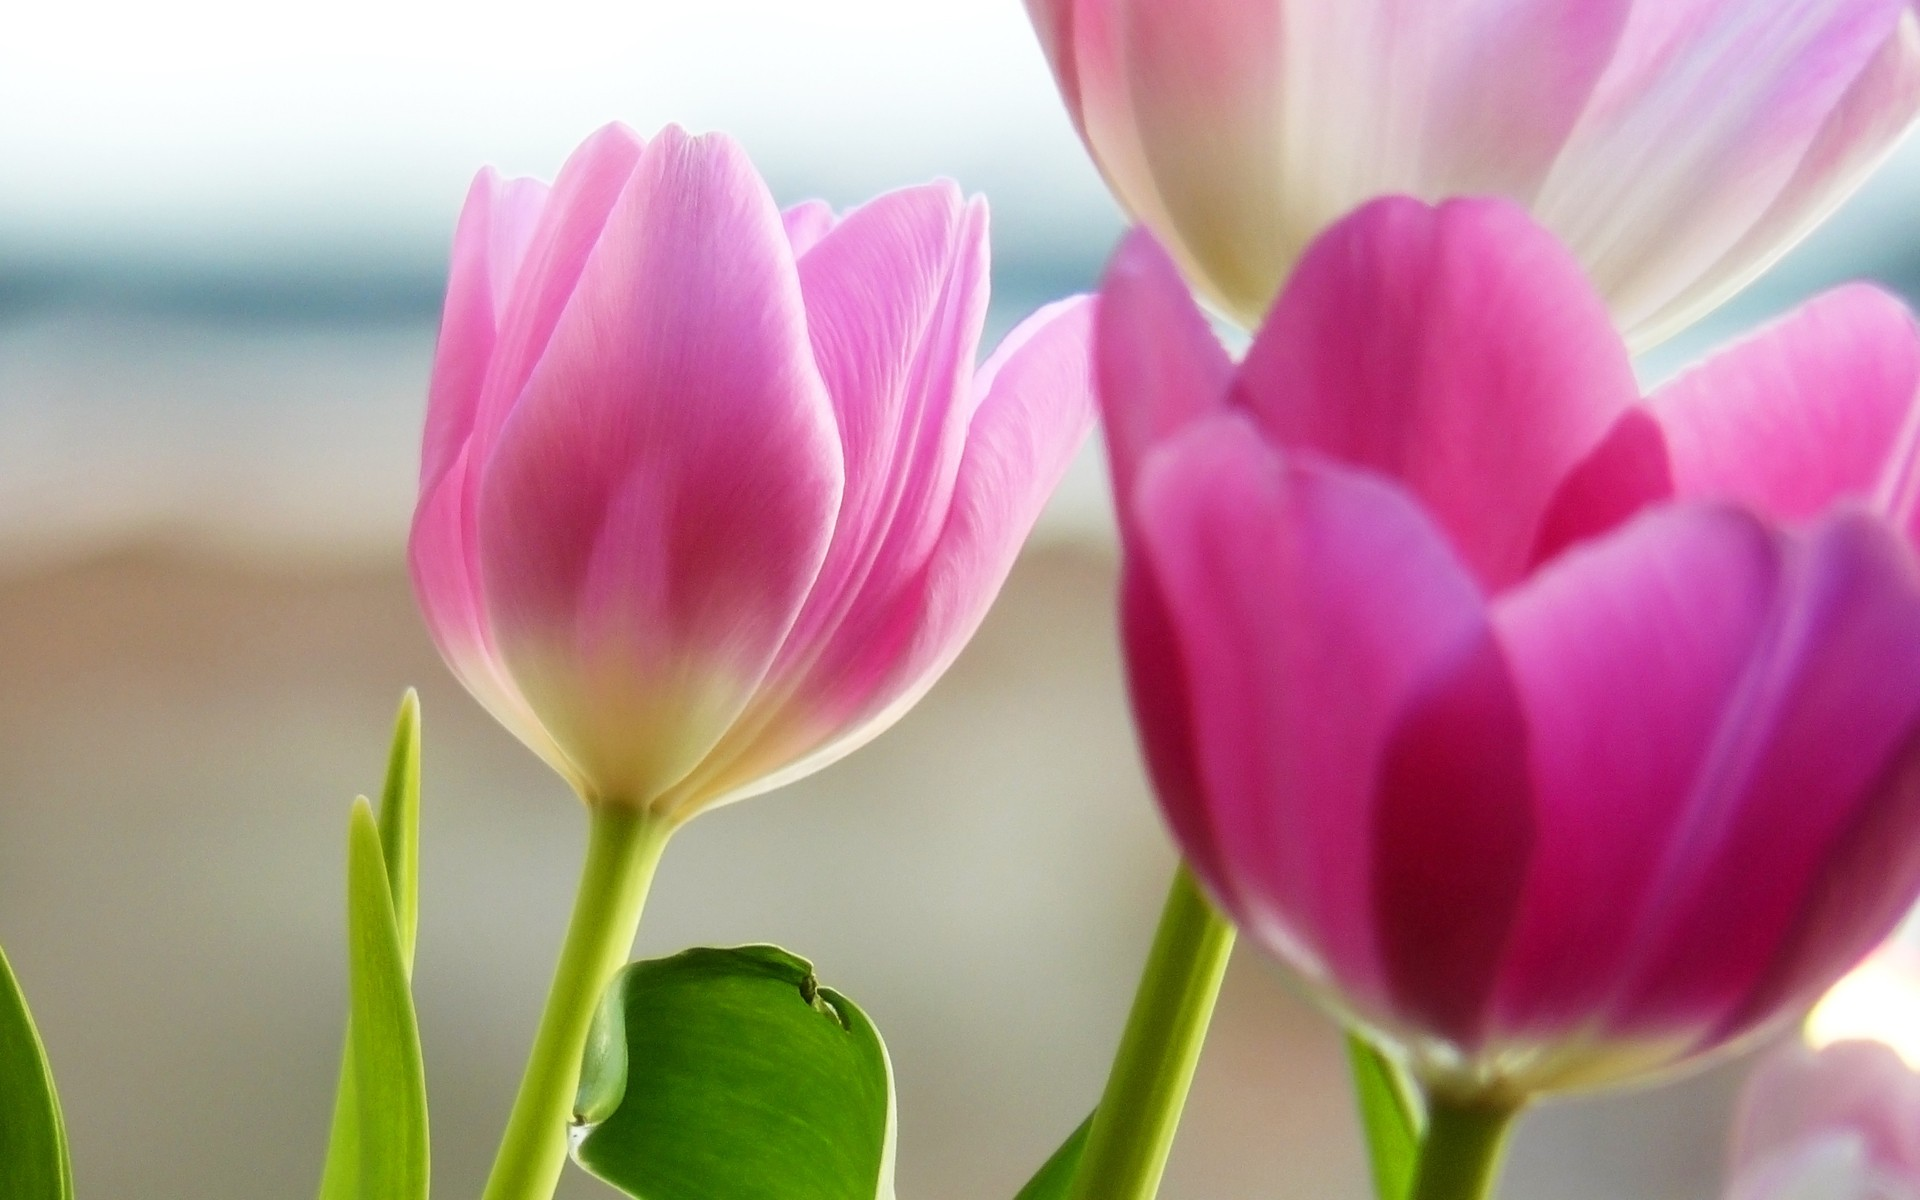 tulips-in-spring-wallpapers_8457_1920x12